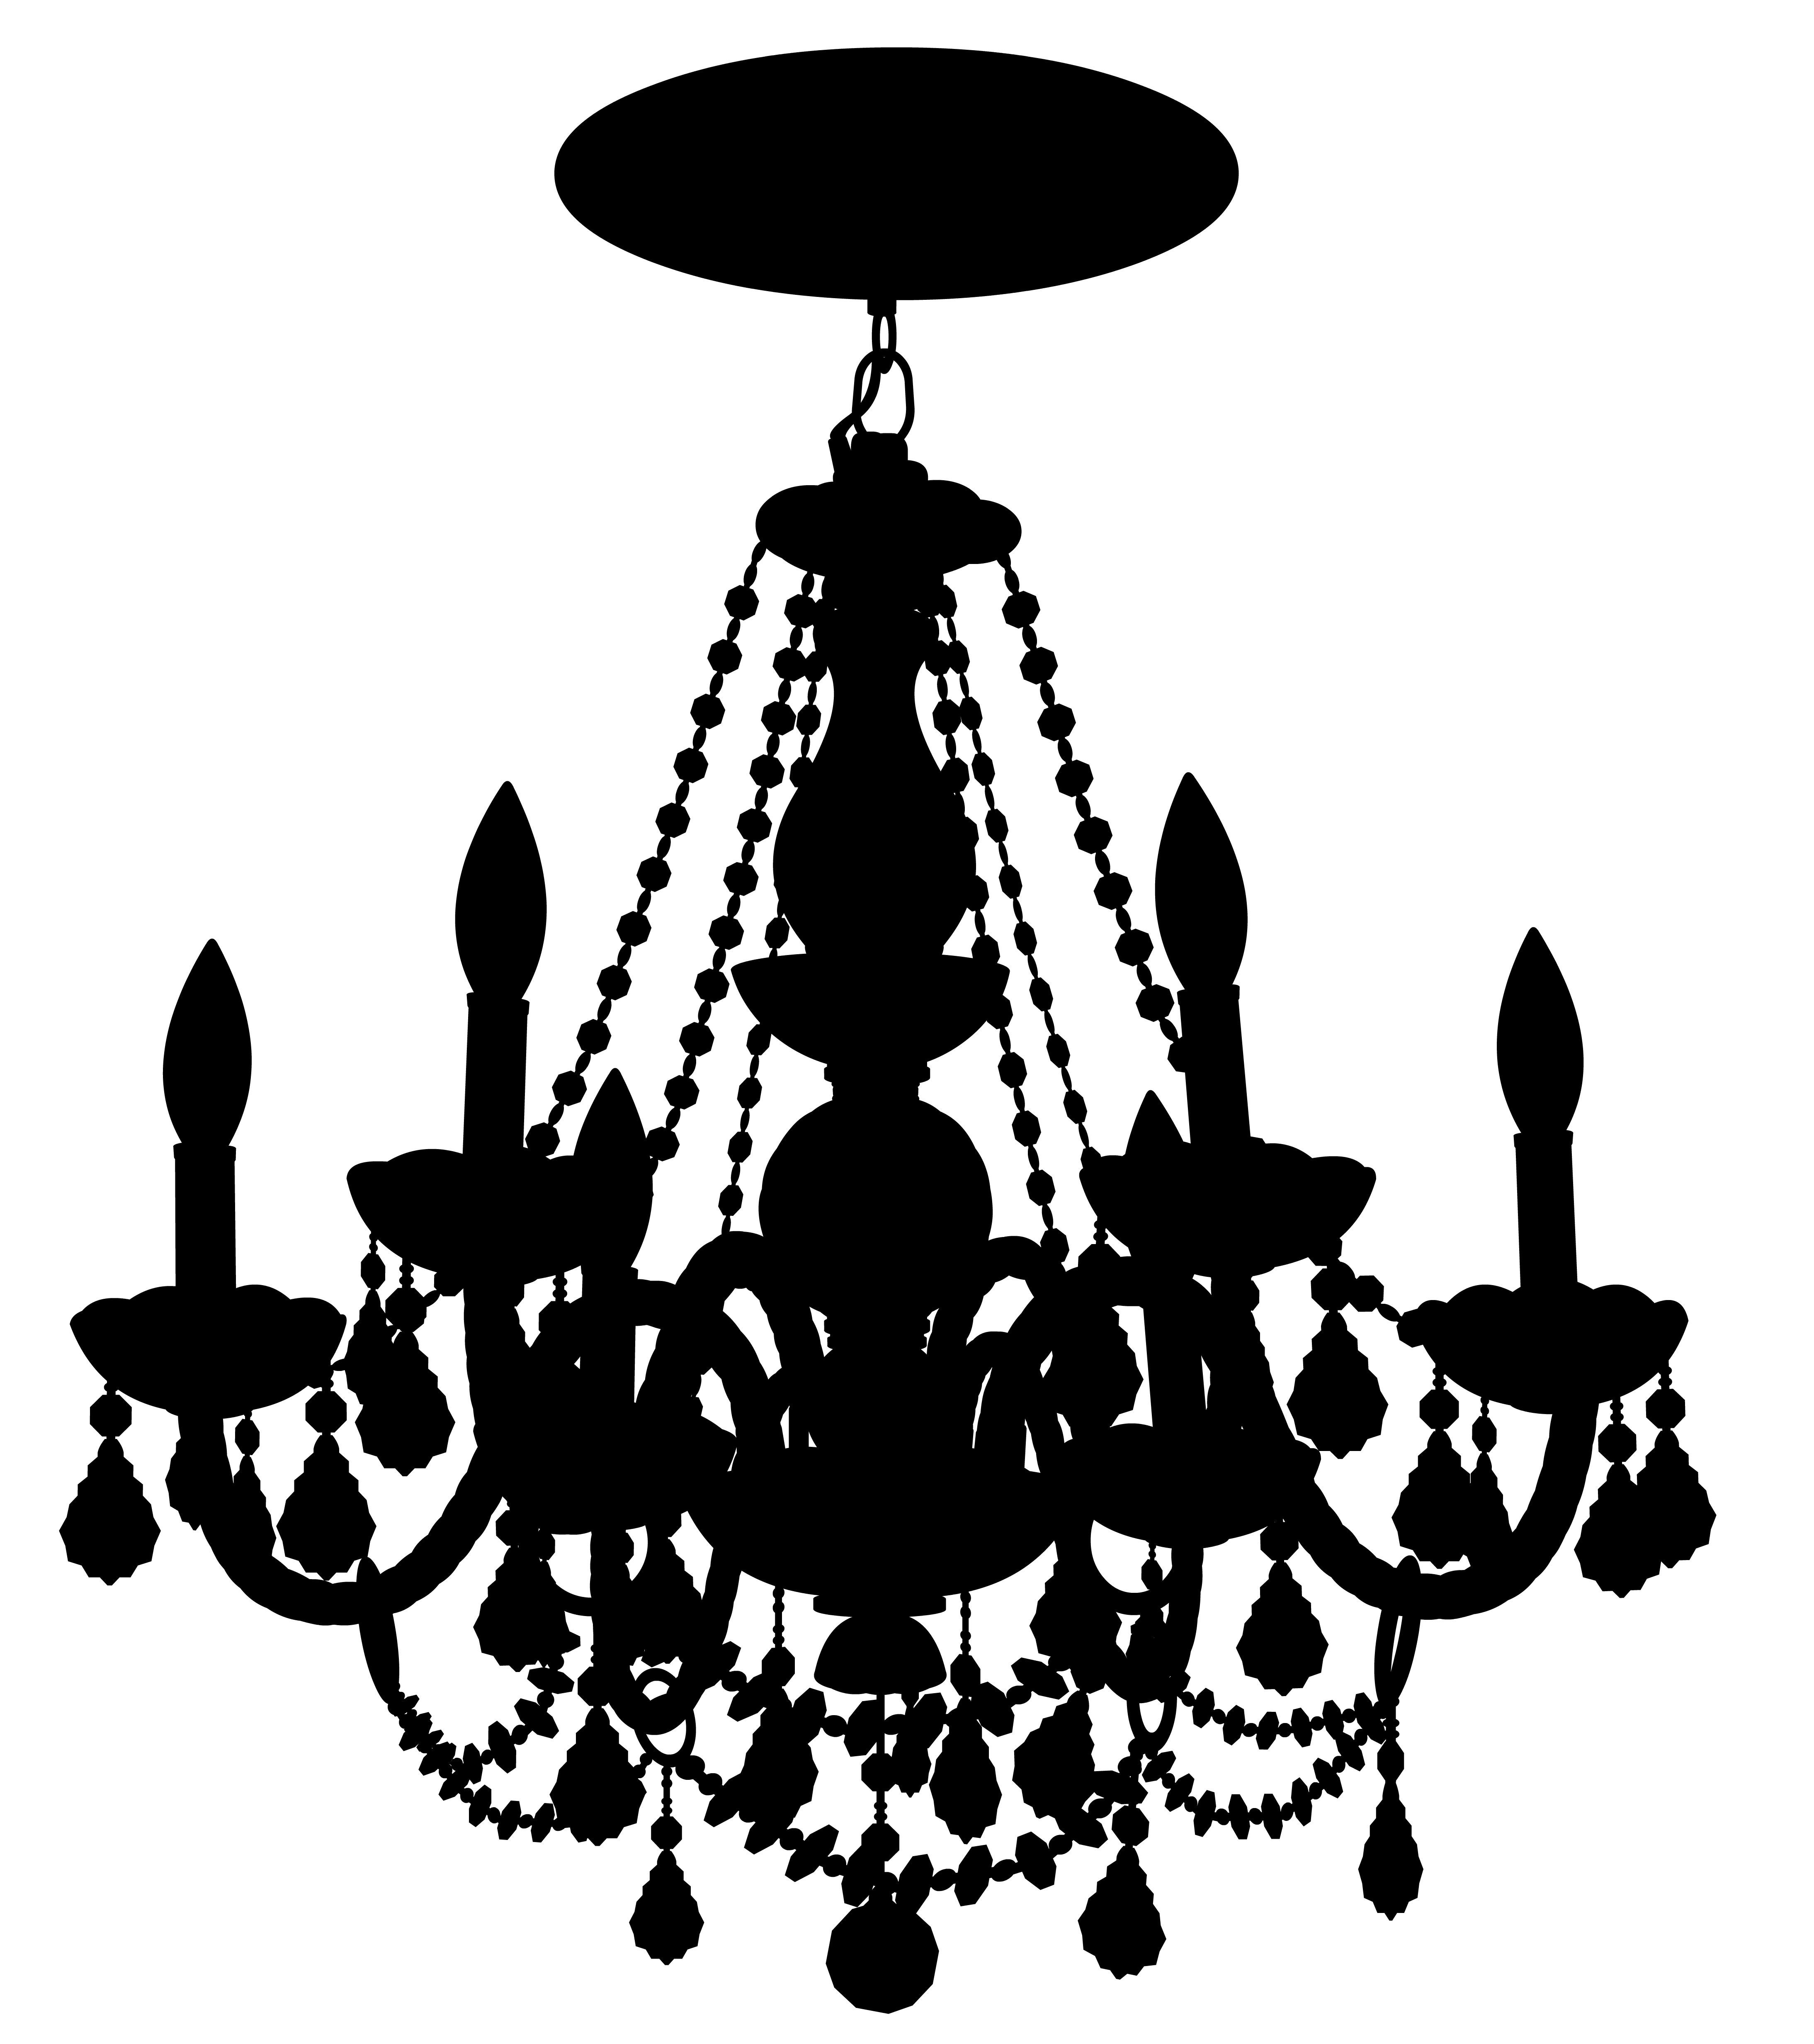 Chandelier perspective clear creative contemporary websites affordable template based easy to maintain websites for small businesses arubaitofo Image collections